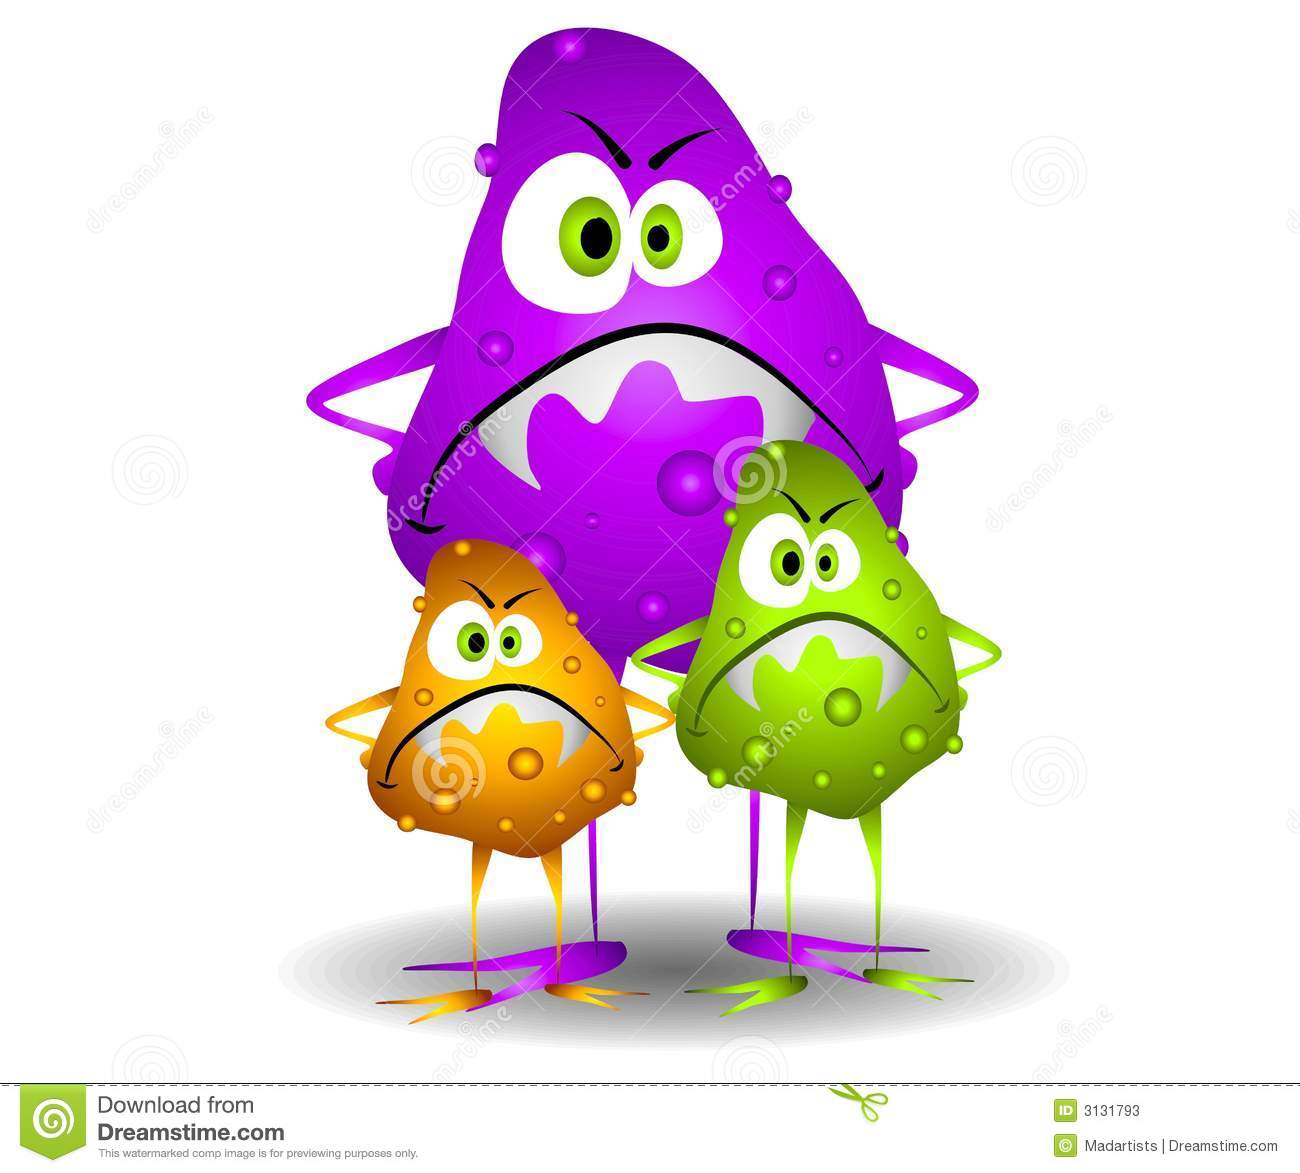 Clip Art Cartoon Illustration Of 3 Nasty Looking Germs Viruses Or